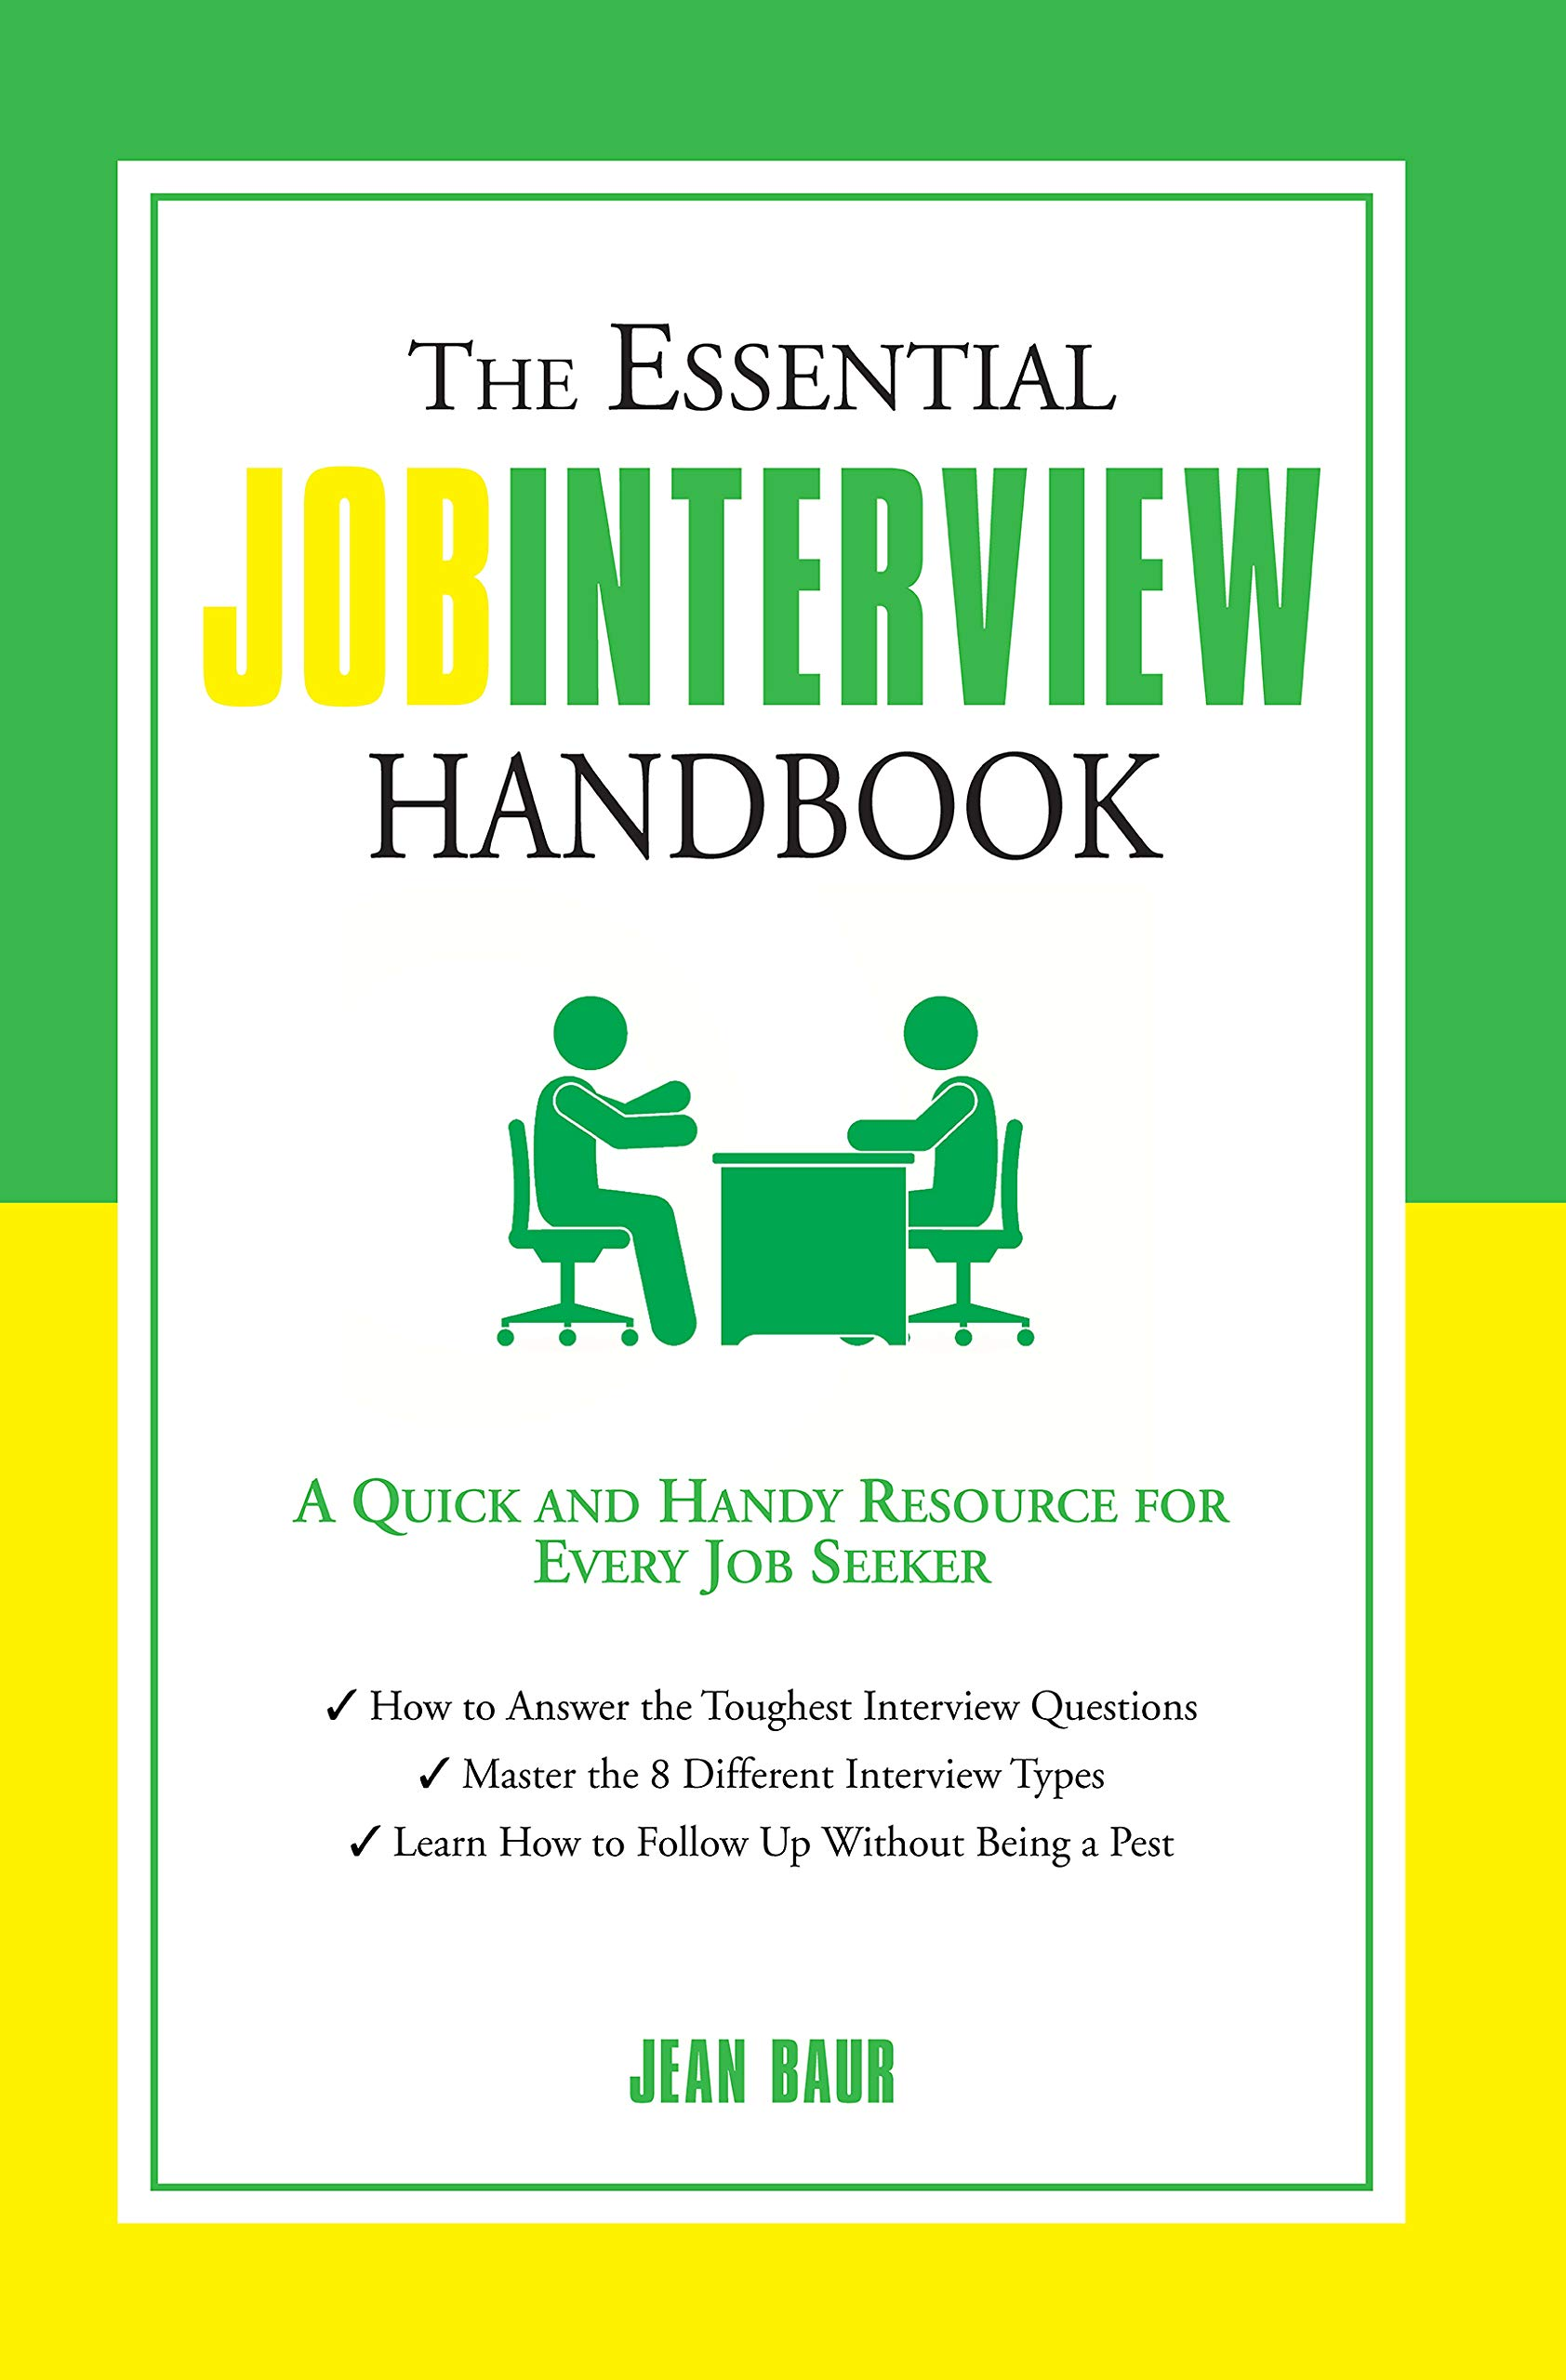 The Essential Job Interview Handbook: A Quick and Handy Resource for Every Job Seeker (The Essential Handbook)